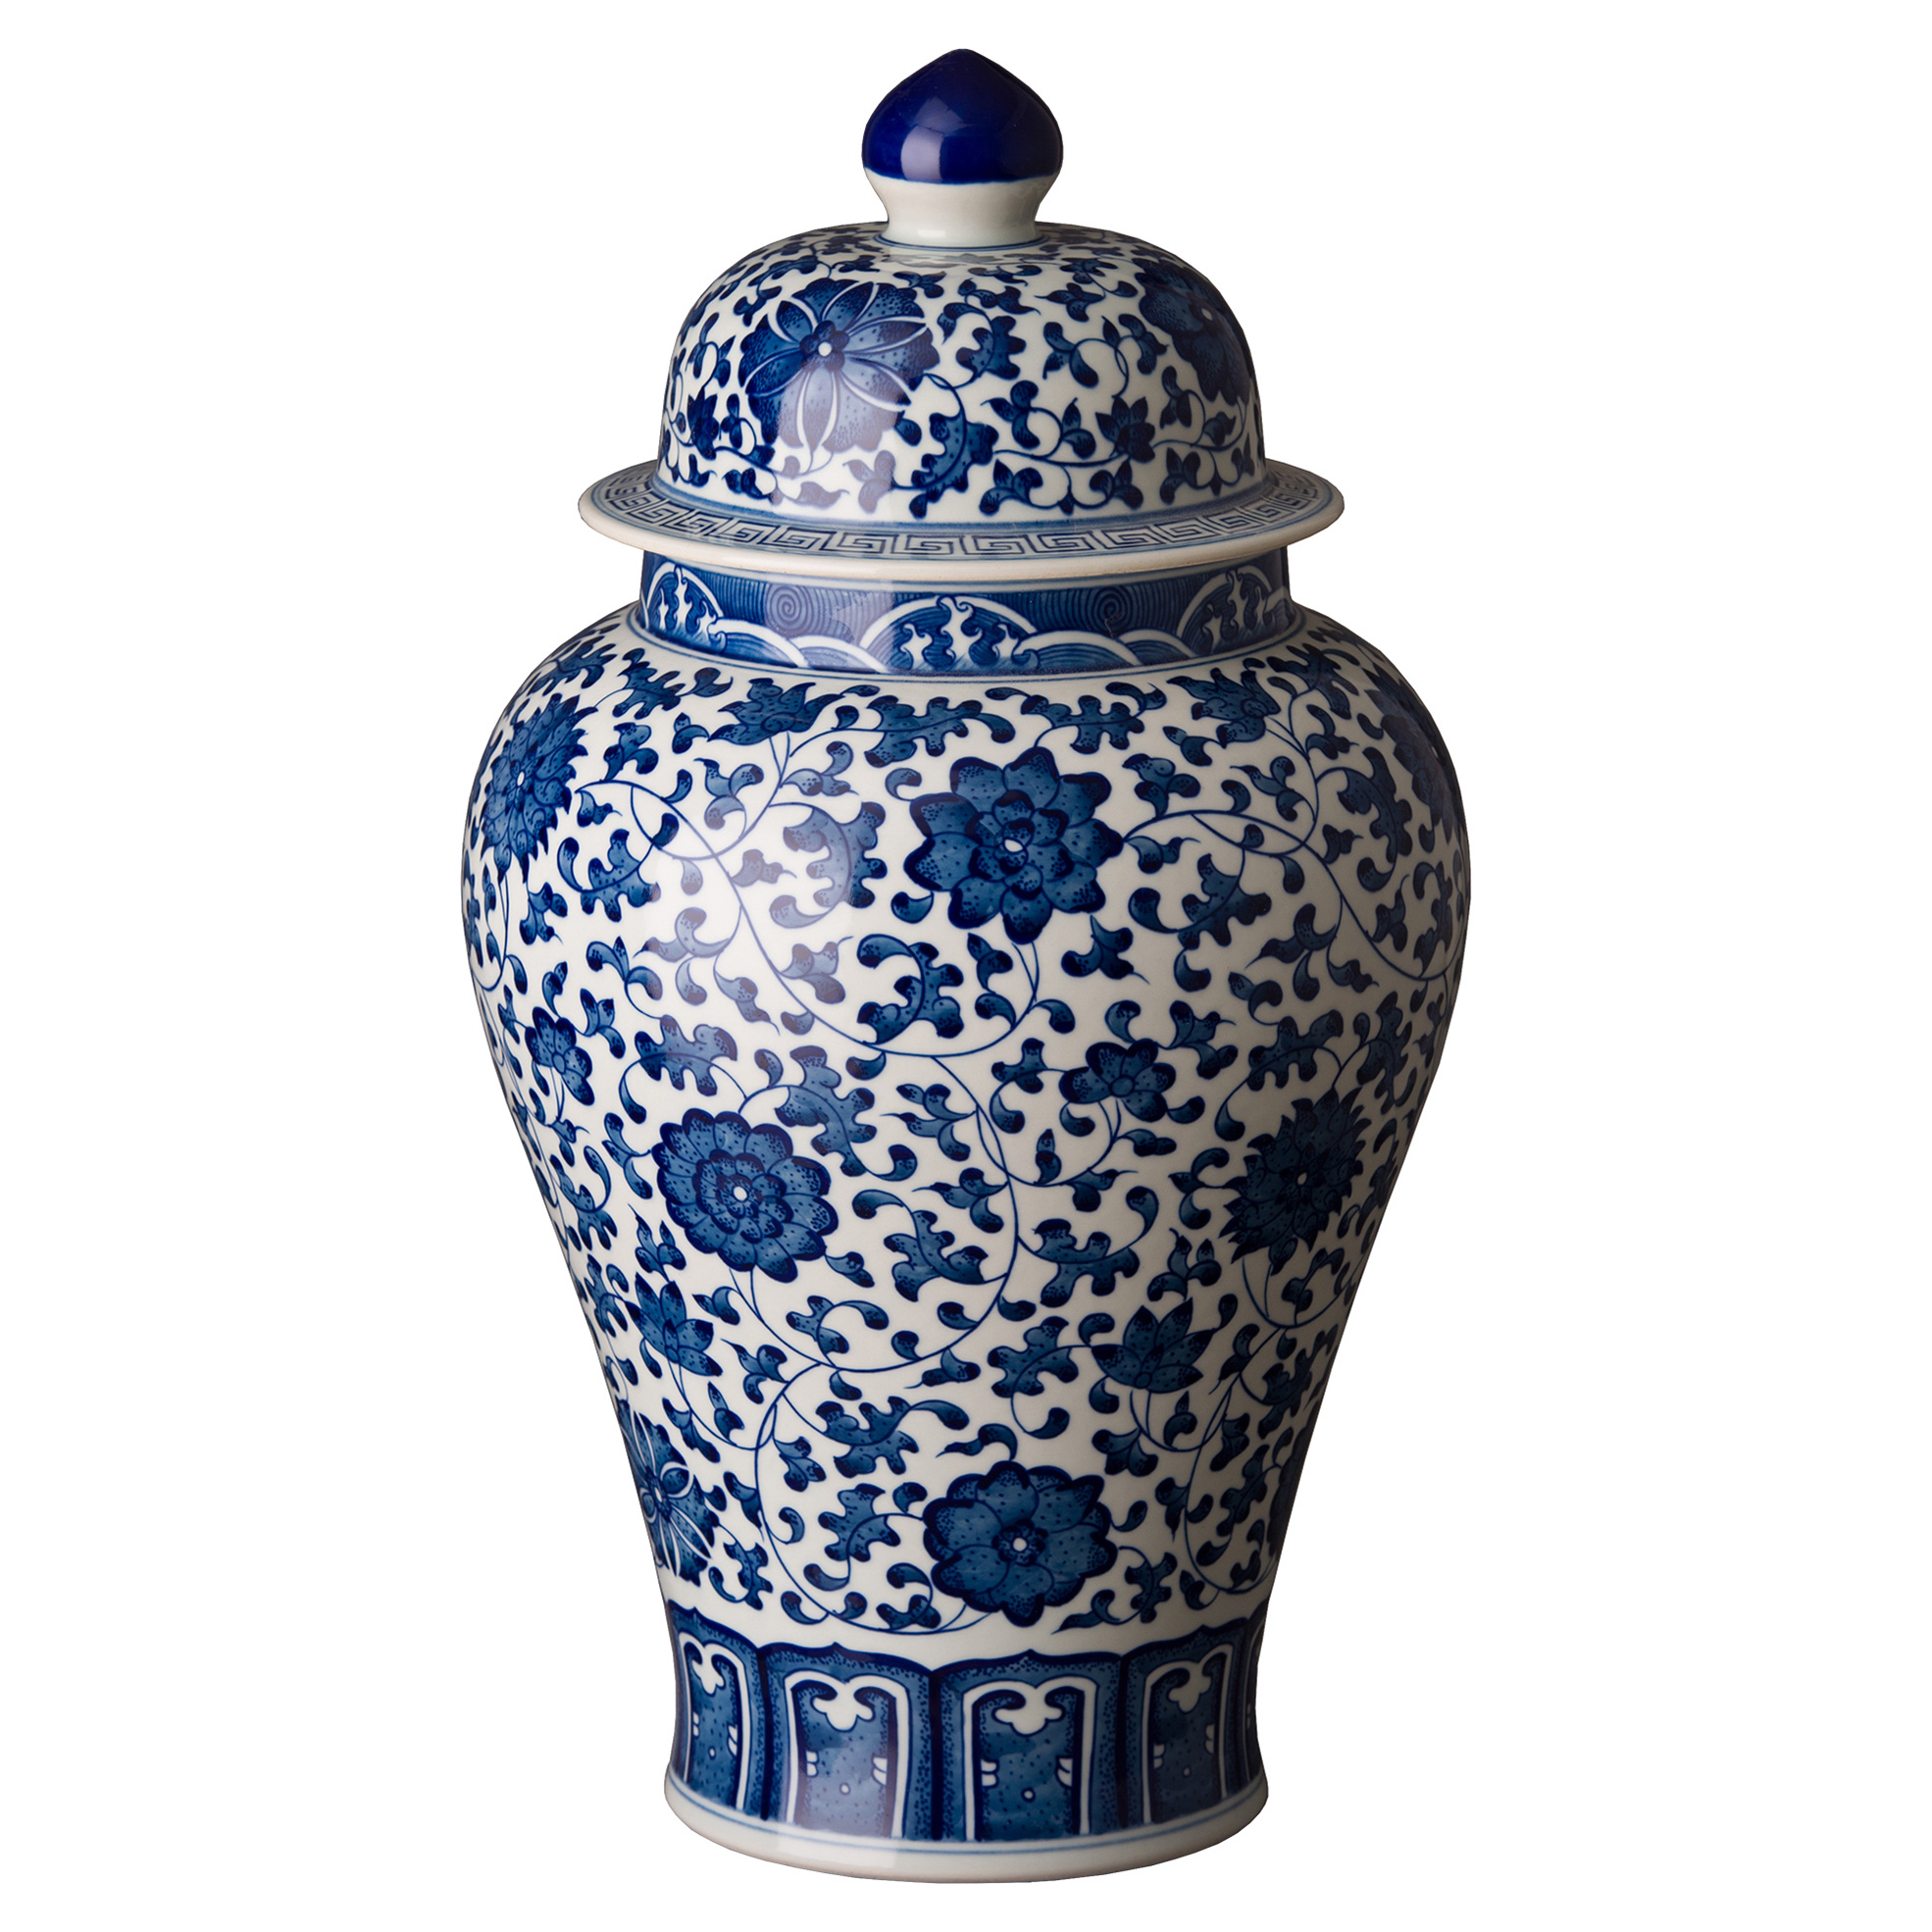 Floral Blue Global Glazed Ceramic Ginger Jar